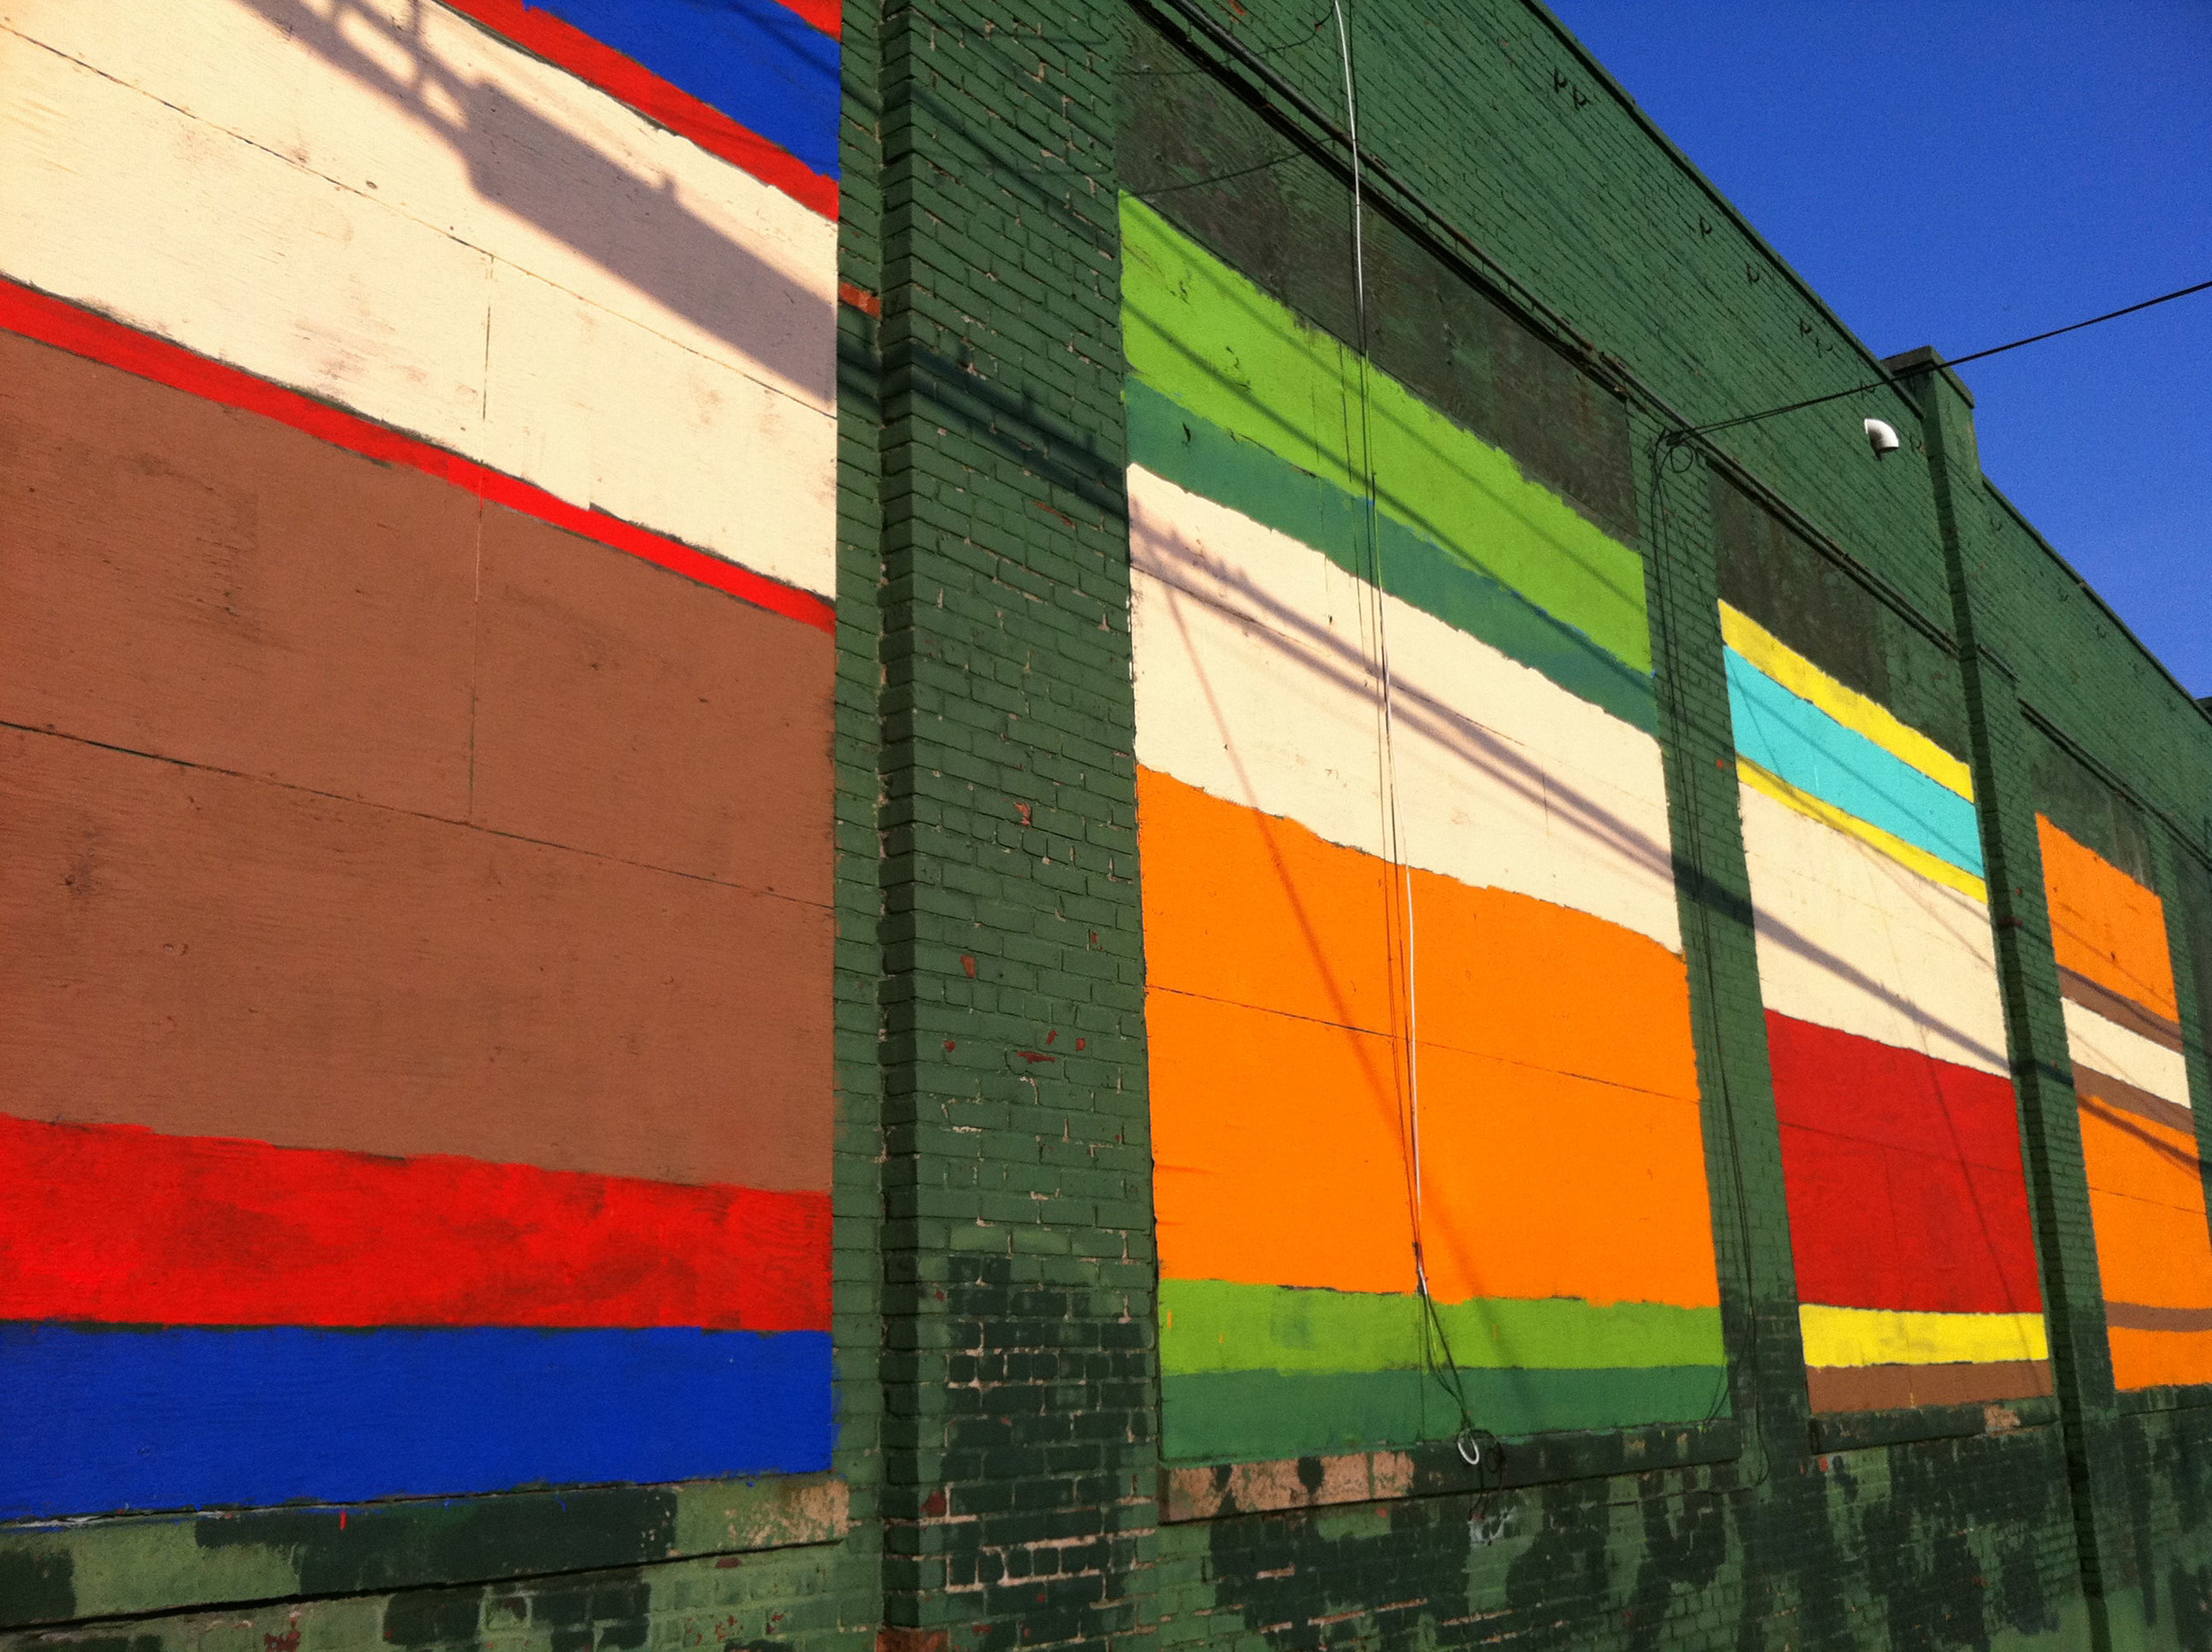 SOUTH PARK WALL (2011)